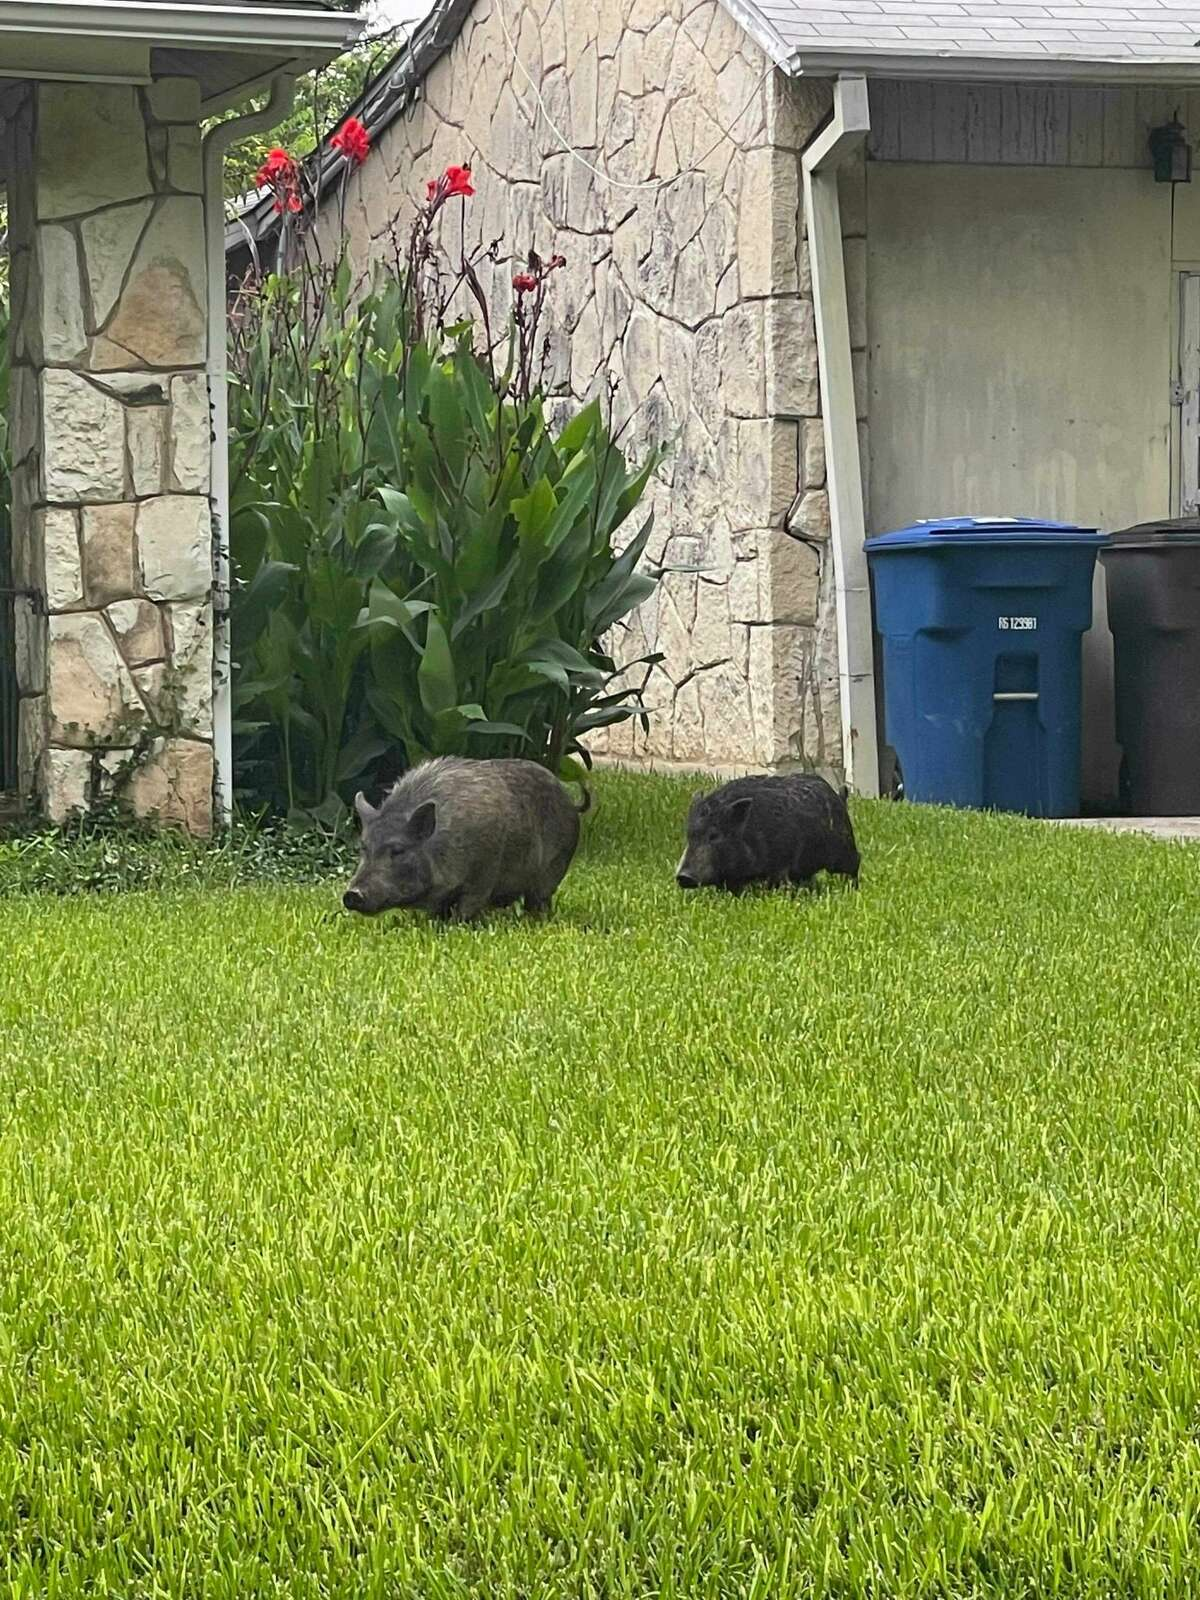 The city's animal care services picked up two cute 40-pound grey pigs roaming around a San Antonio neighborhood on Tuesday morning.